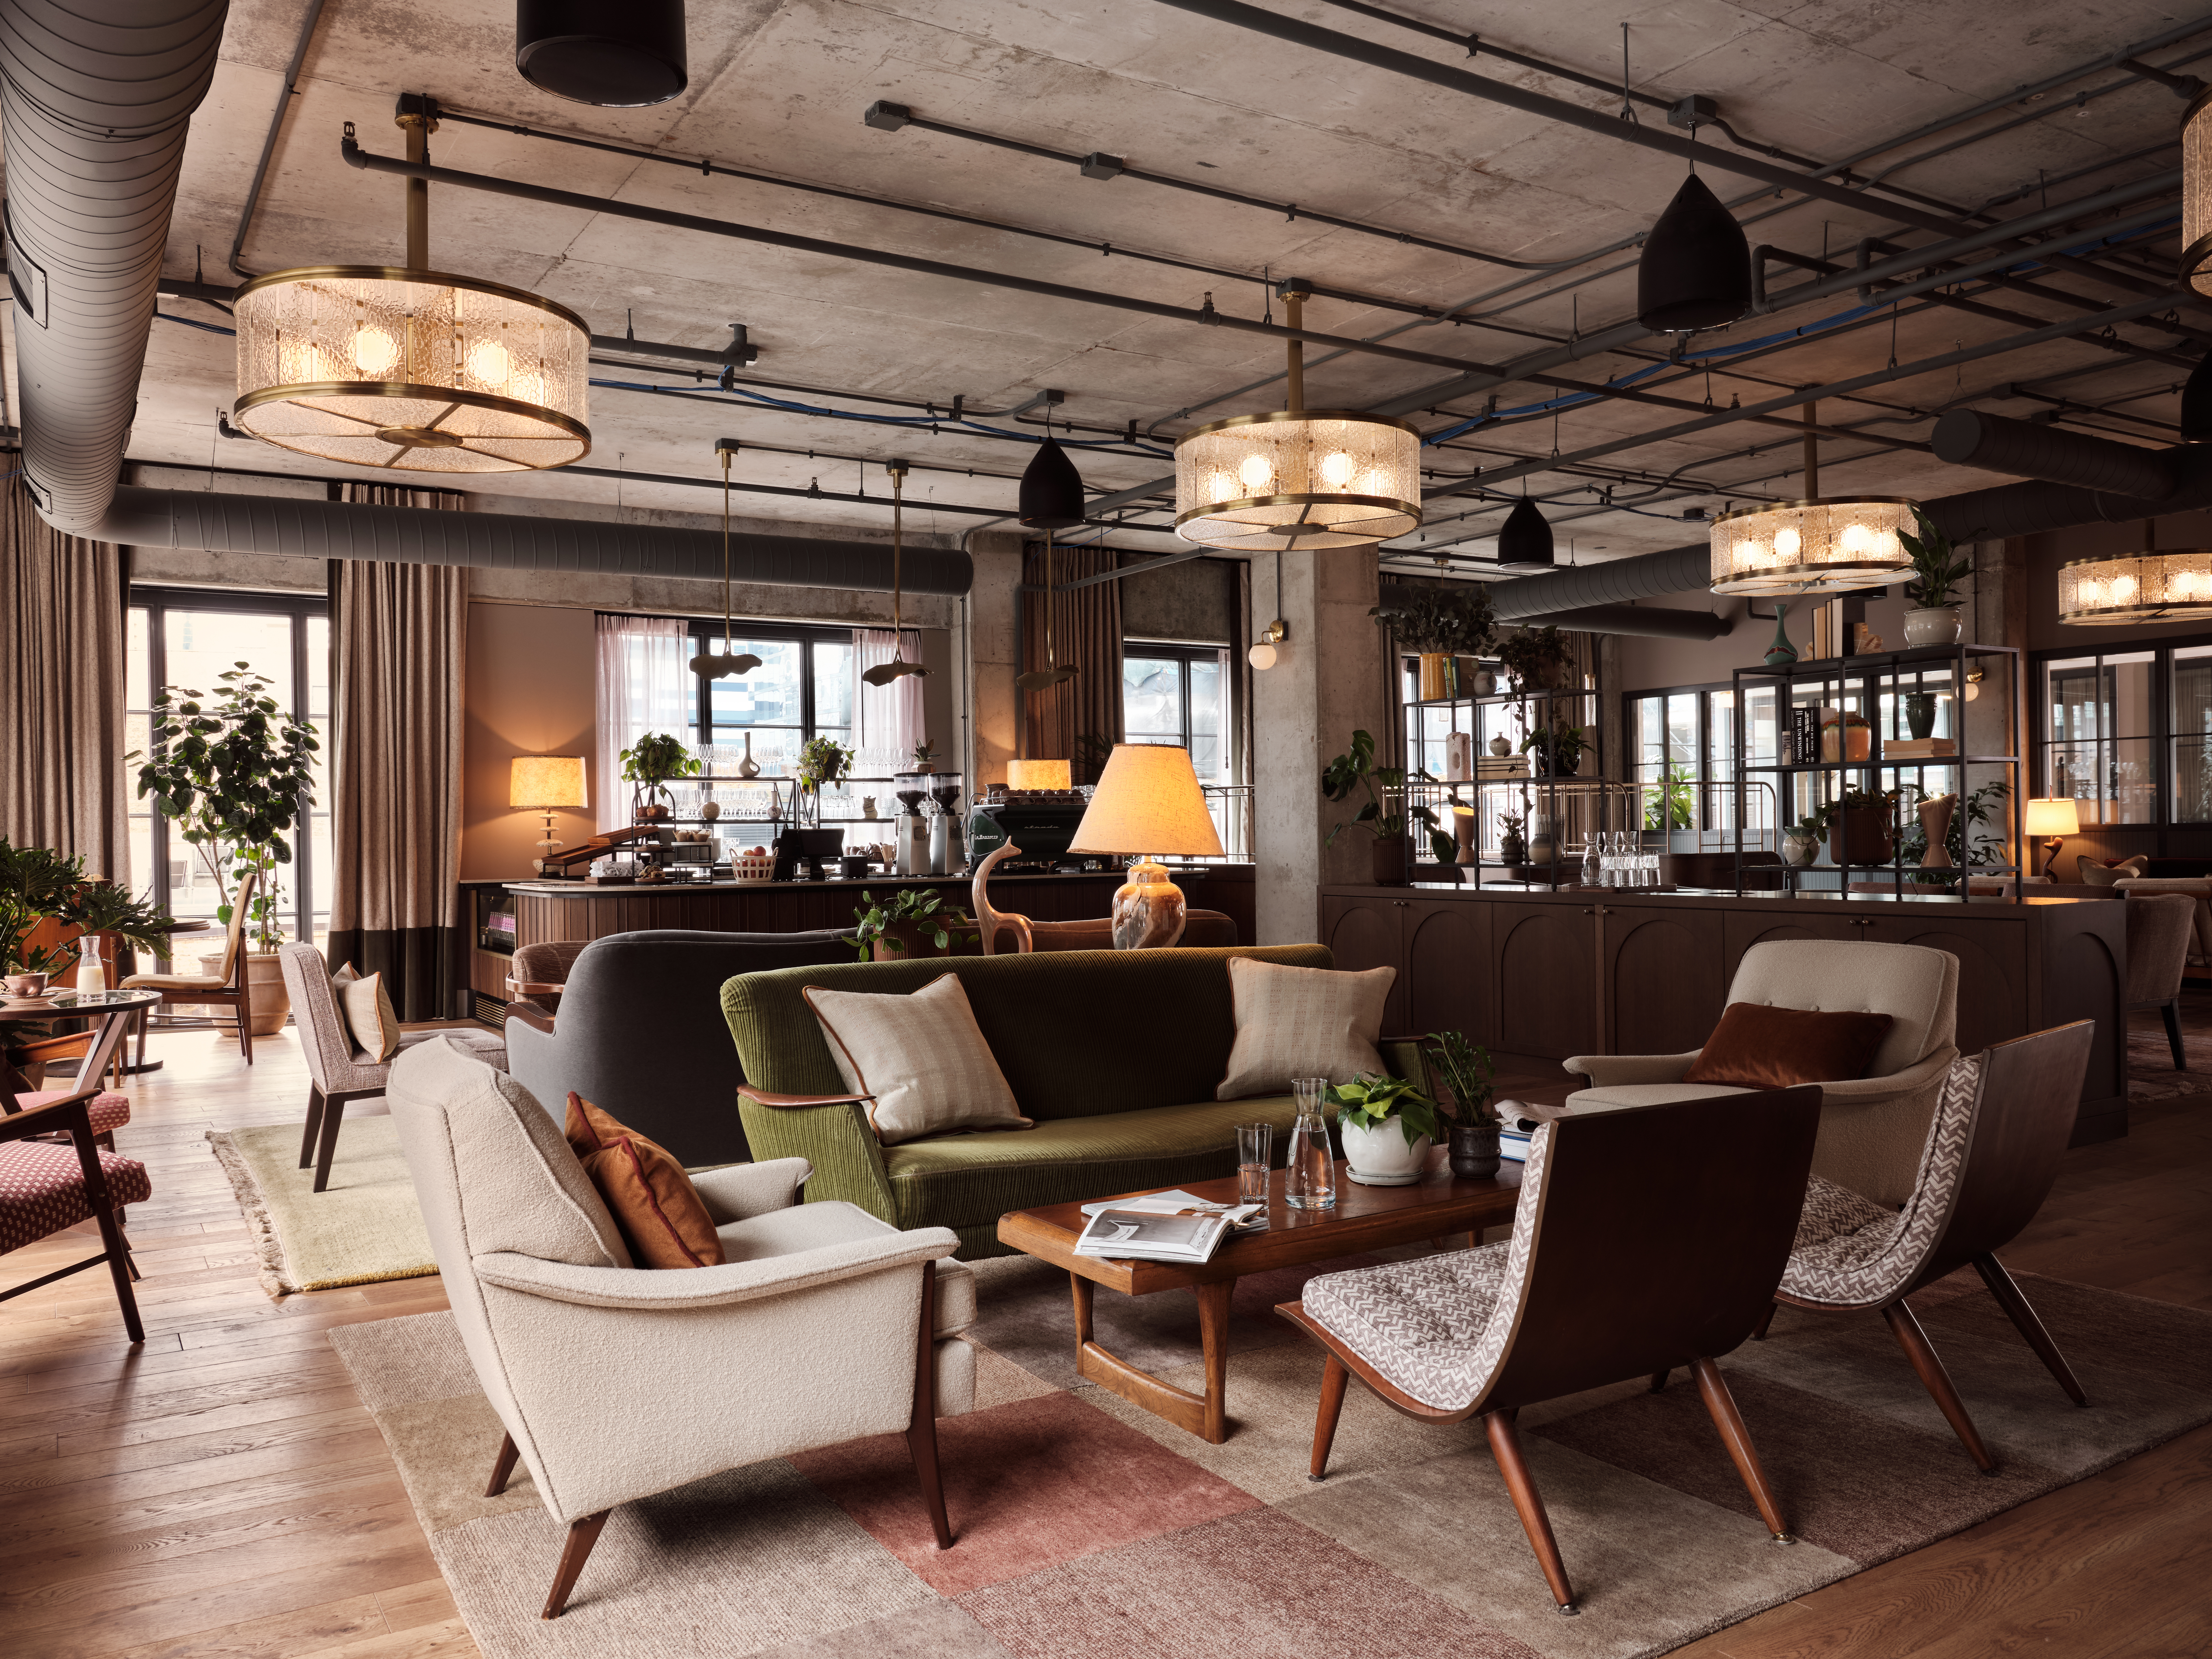 A large room with a concrete ceiling, comfortable couches, chairs and coffee tables.